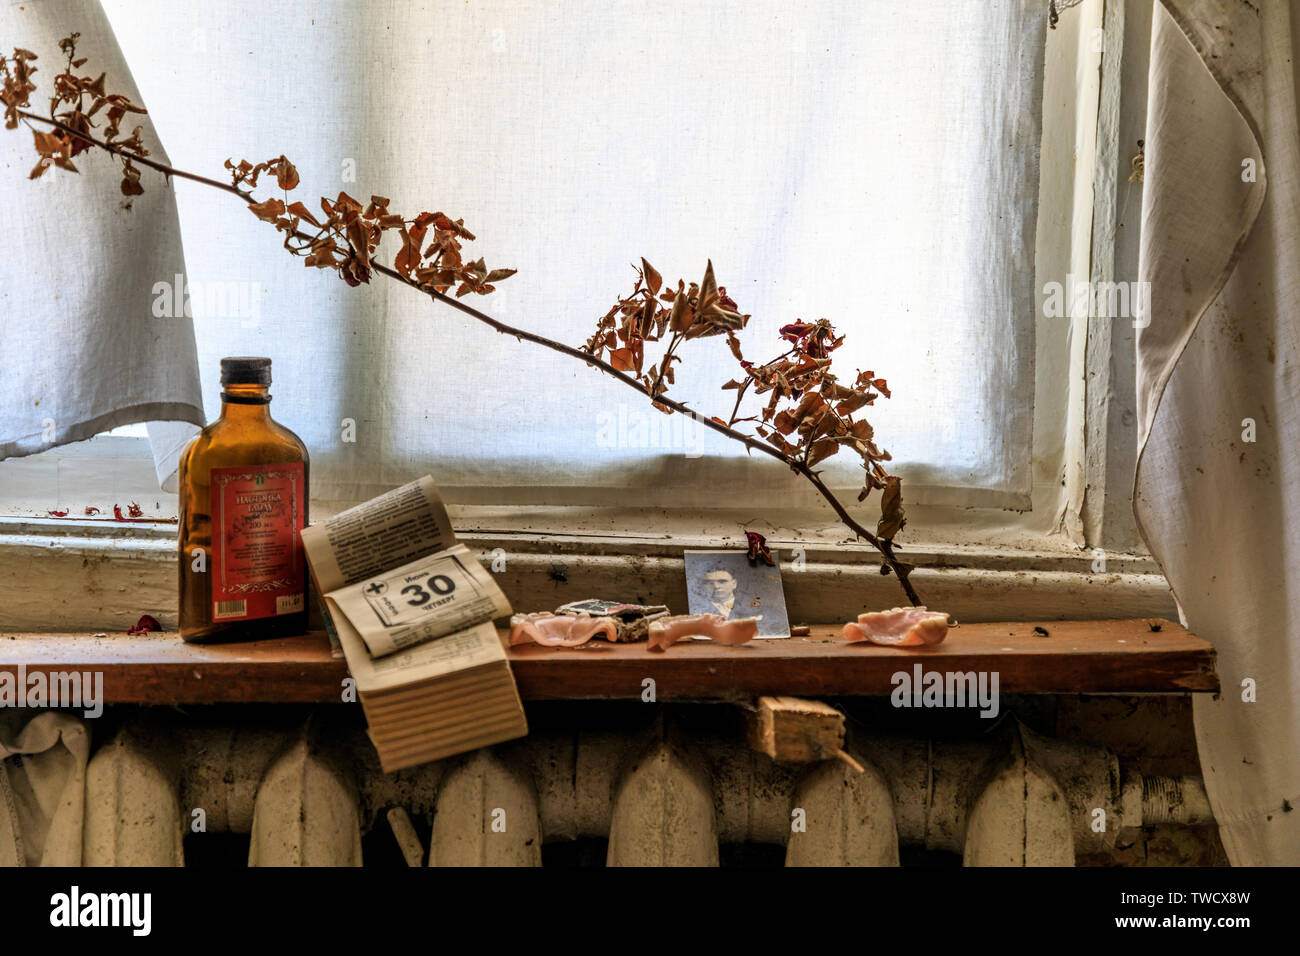 Eastern Europe, Ukraine, Pripyat, Chernobyl. Abandoned house. Window, dead branch,calendar, medicine bottle, dentures on window sill. April 09, 2018. - Stock Image